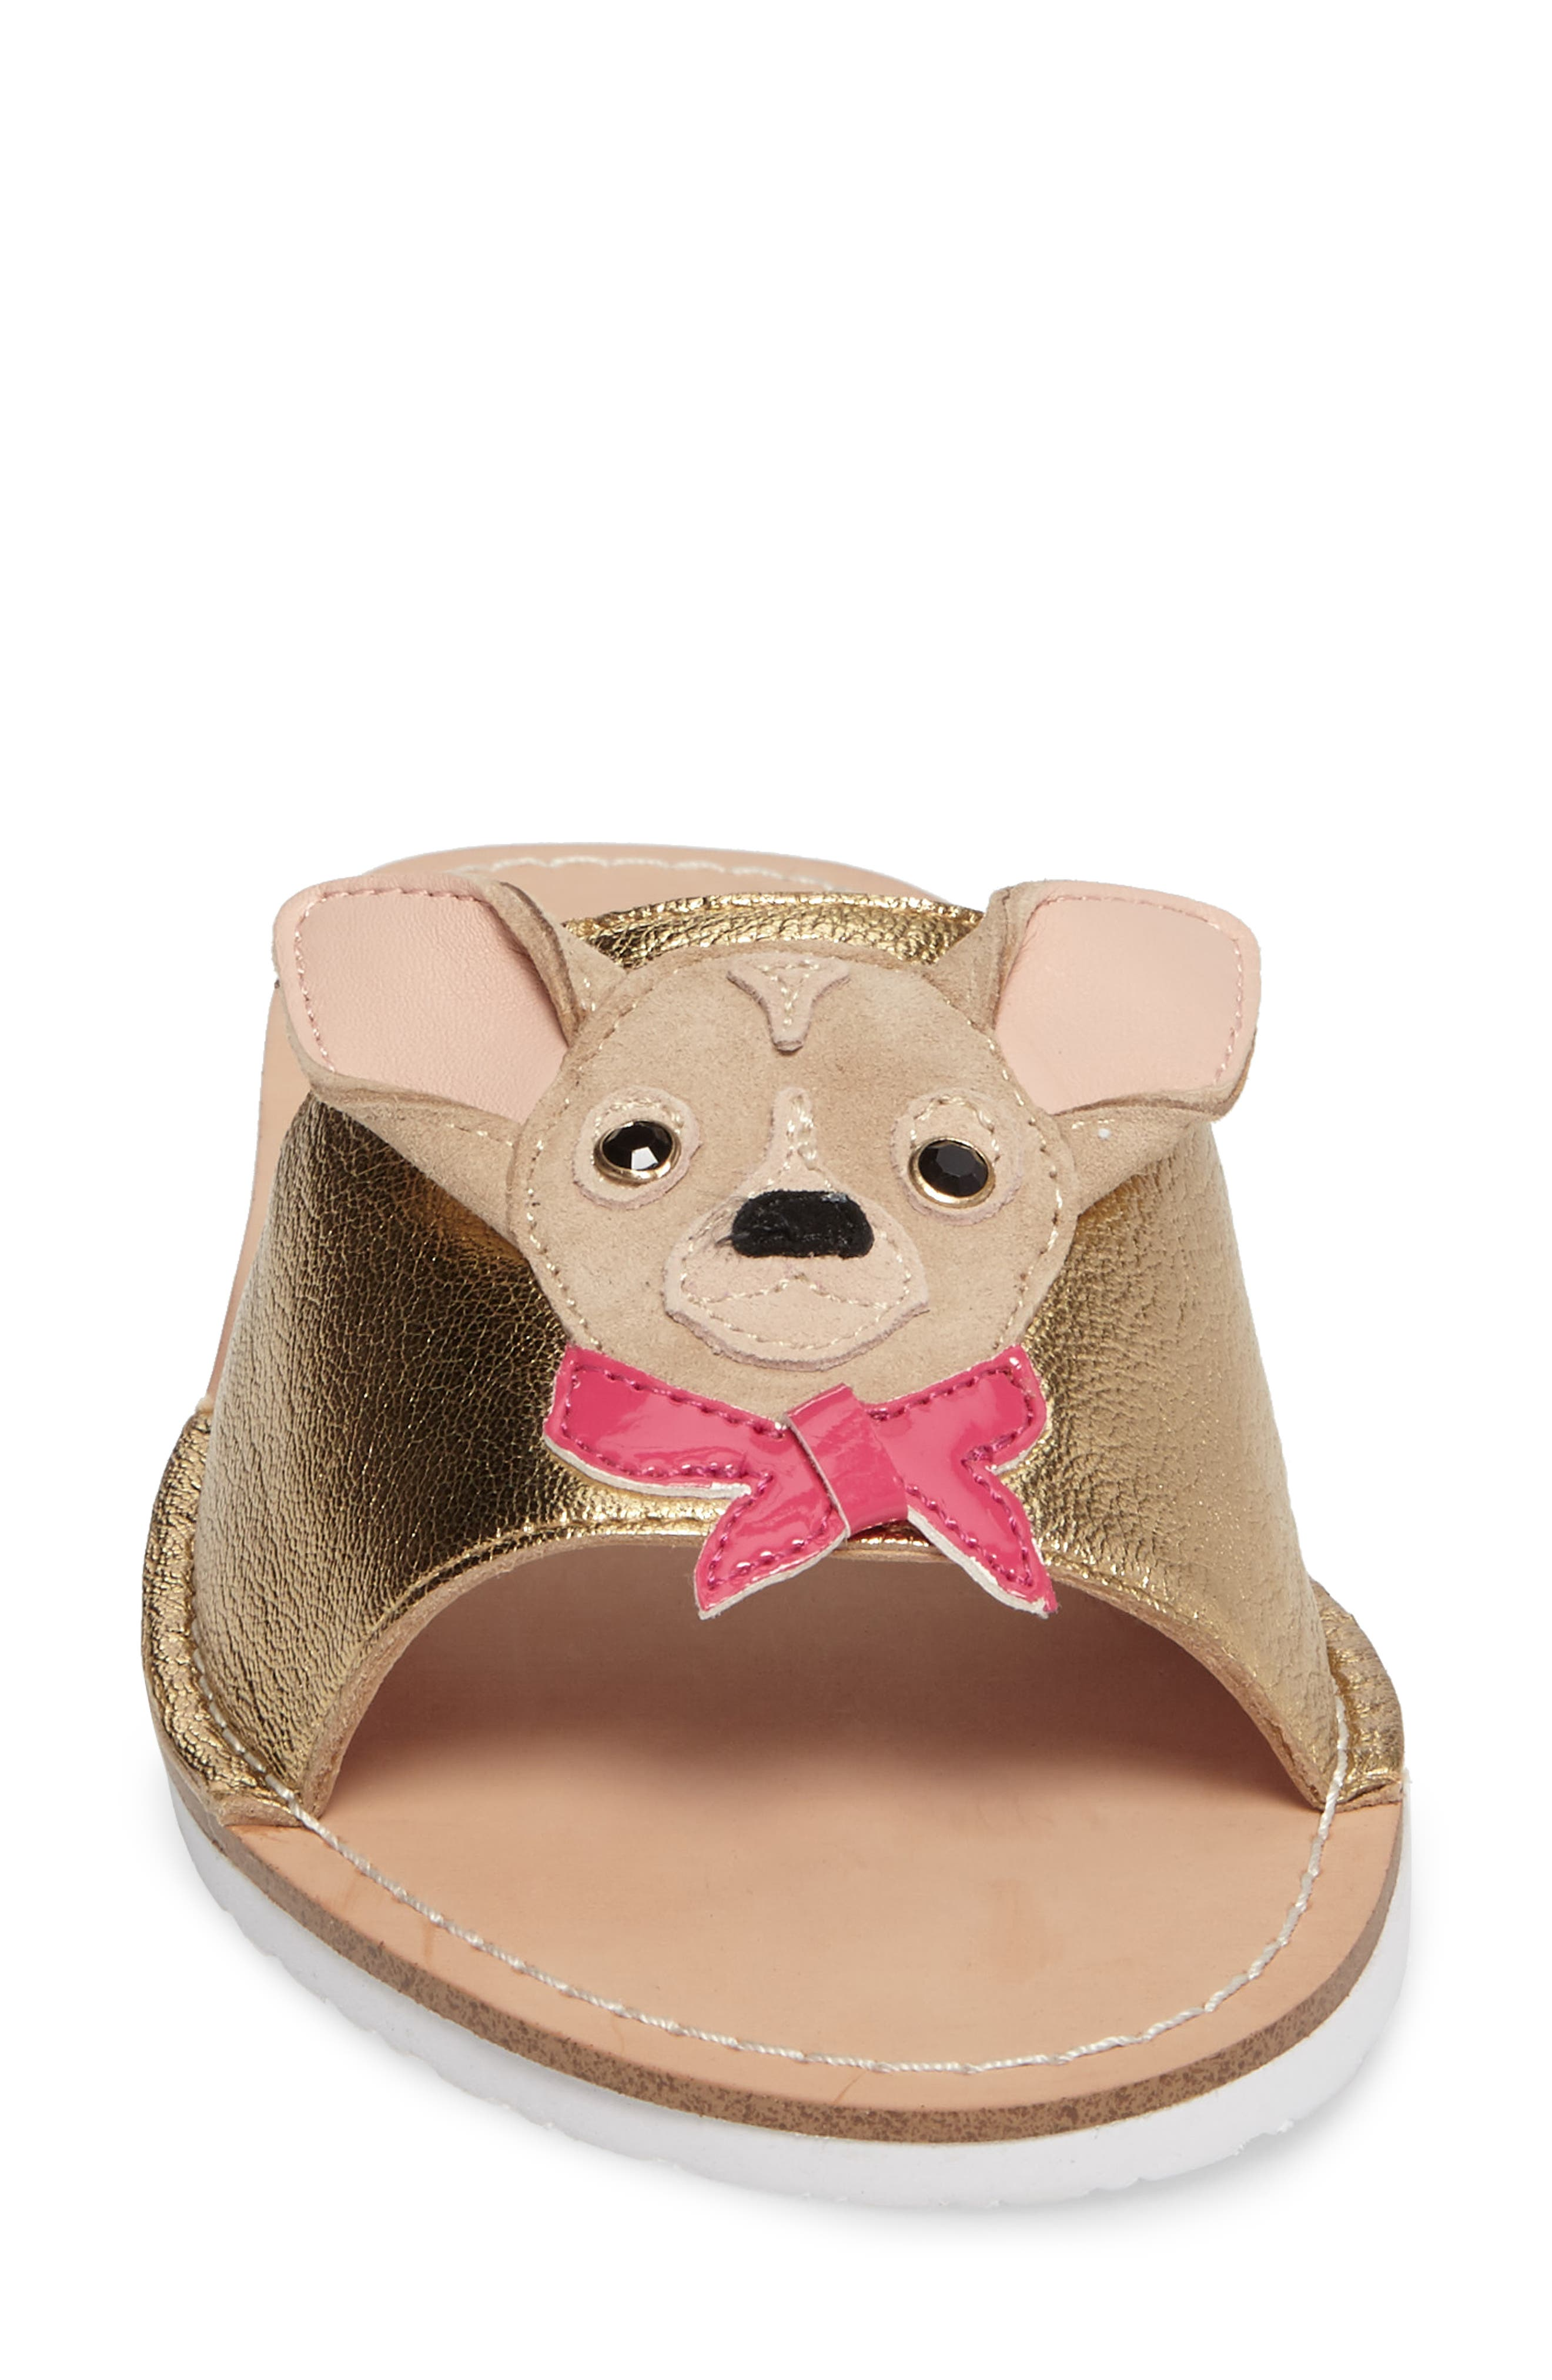 Alternate Image 3  - kate spade new york isadore chihuahua slide sandal (Women)